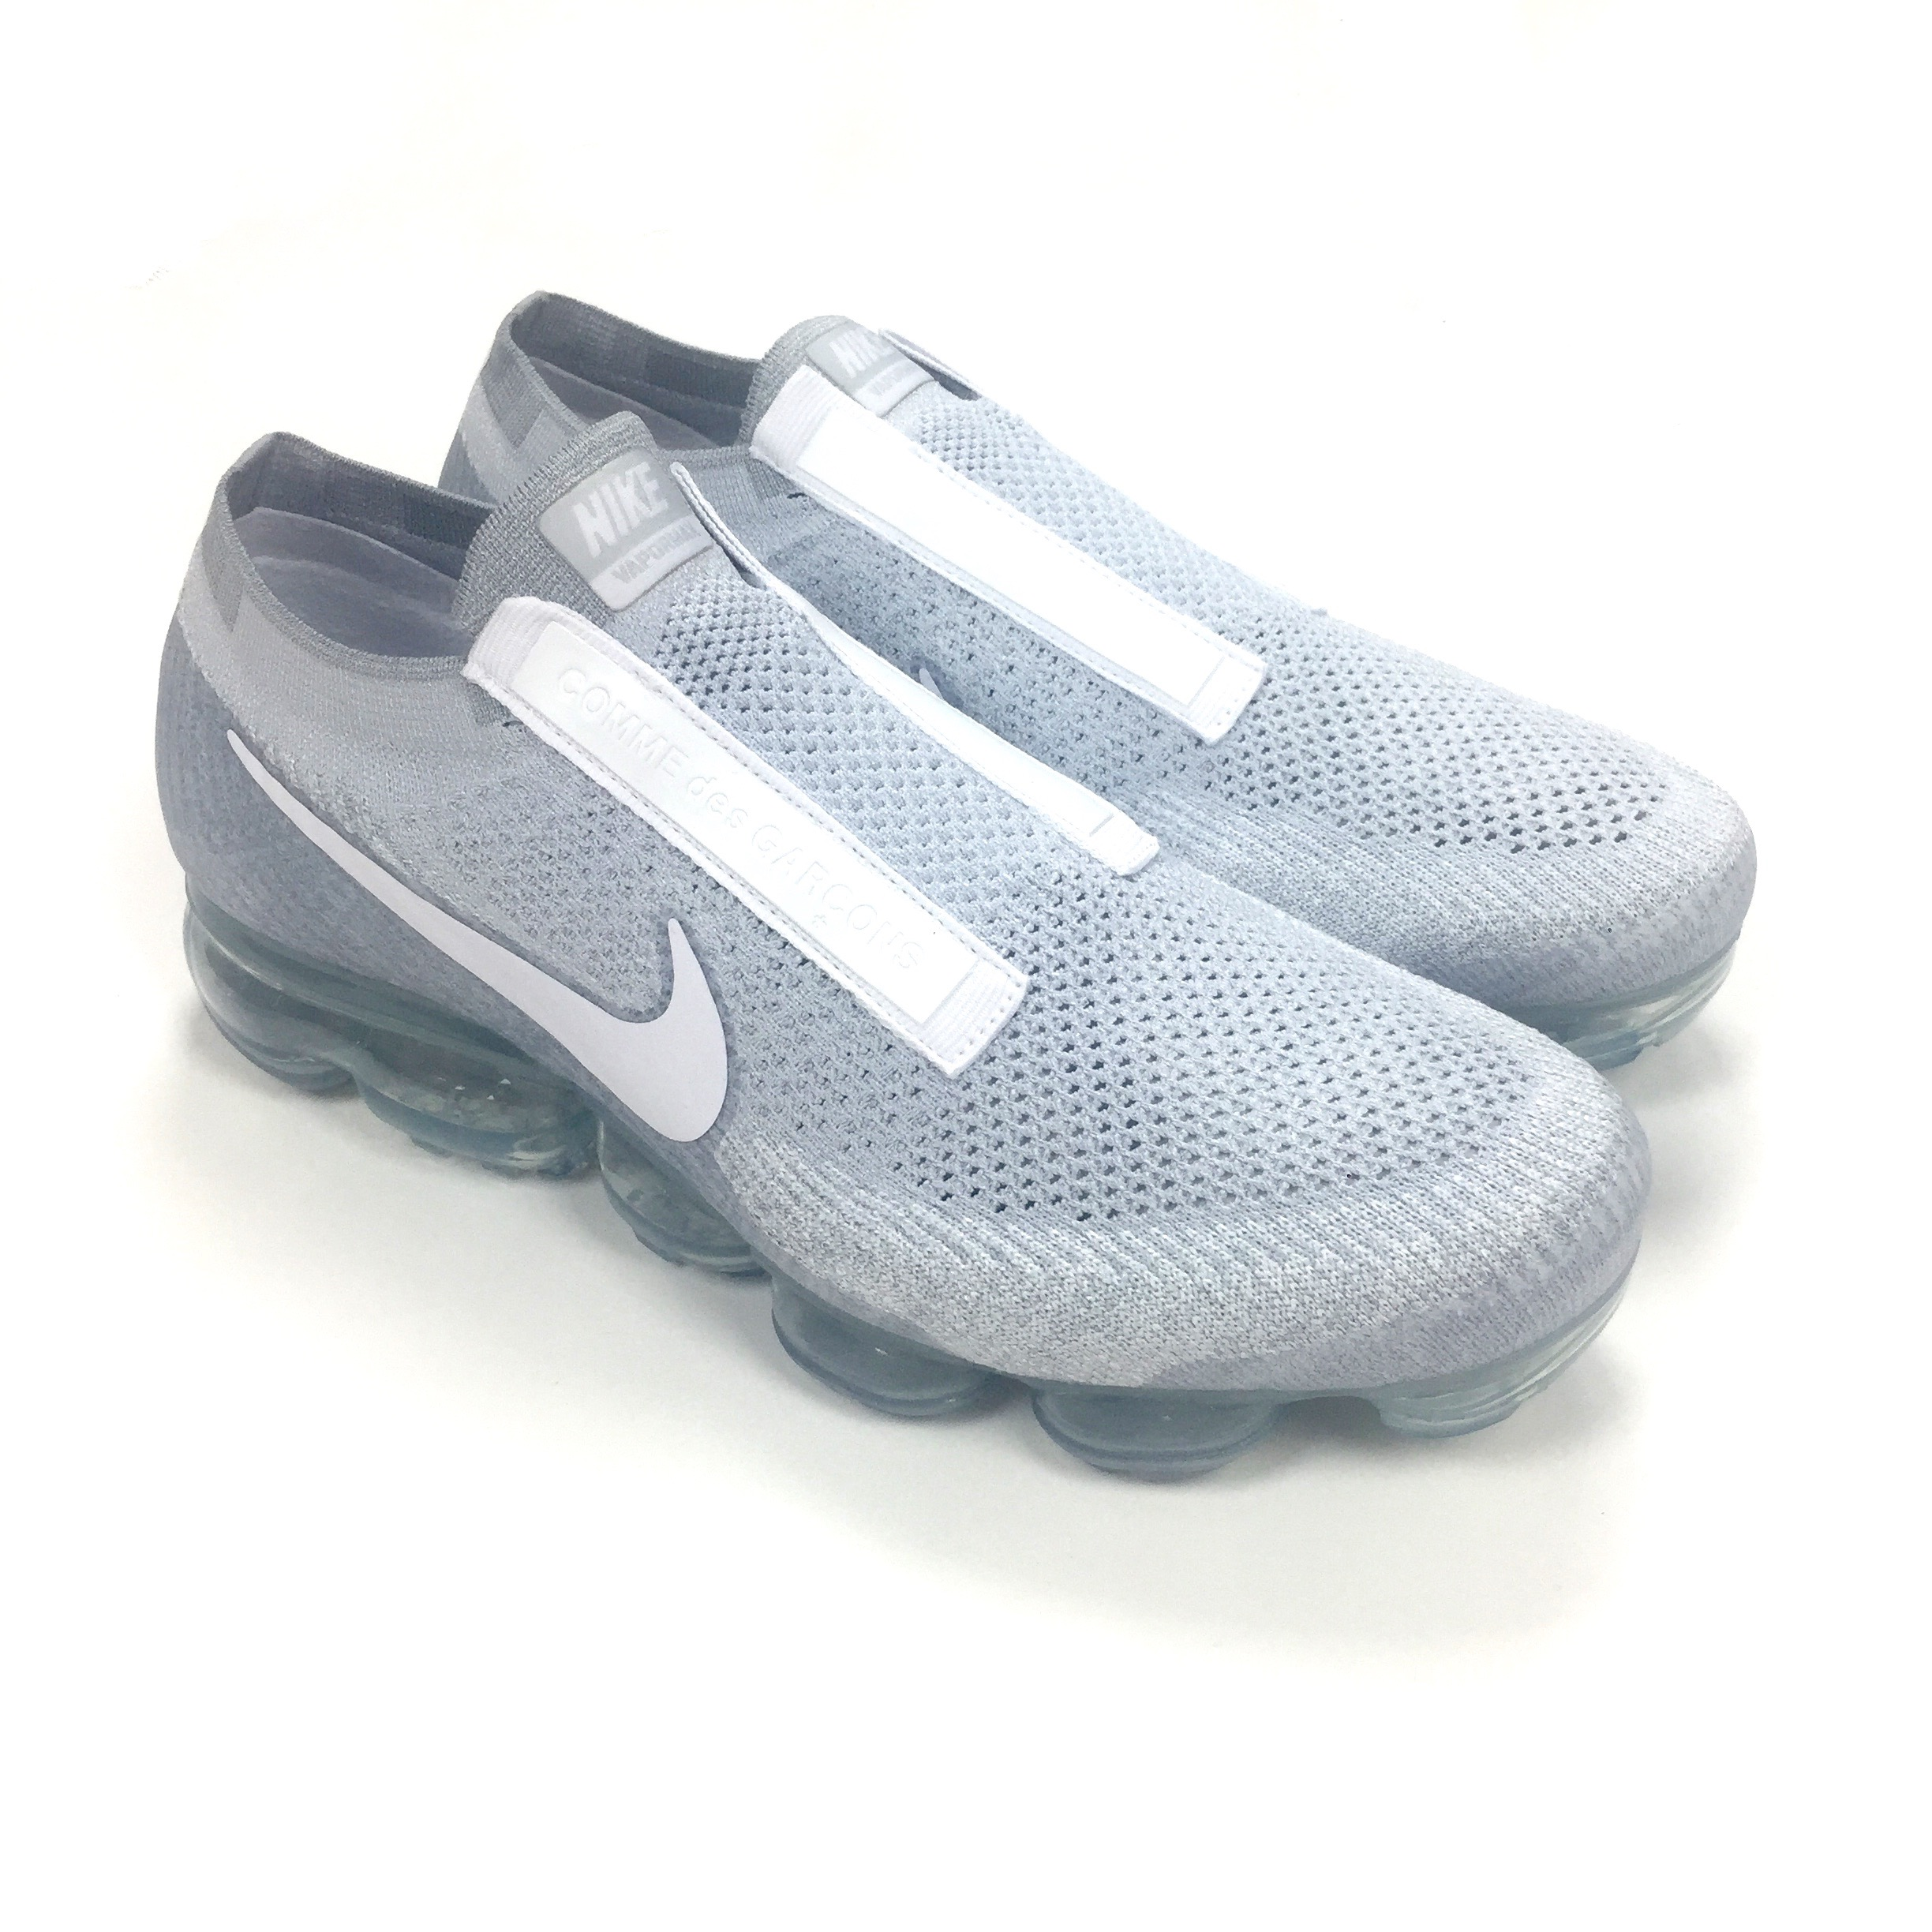 341fbf11b51ac Nike Air Vapormax FK CDG White Pure Platinum DS Size 10.5 - Low-Top ...